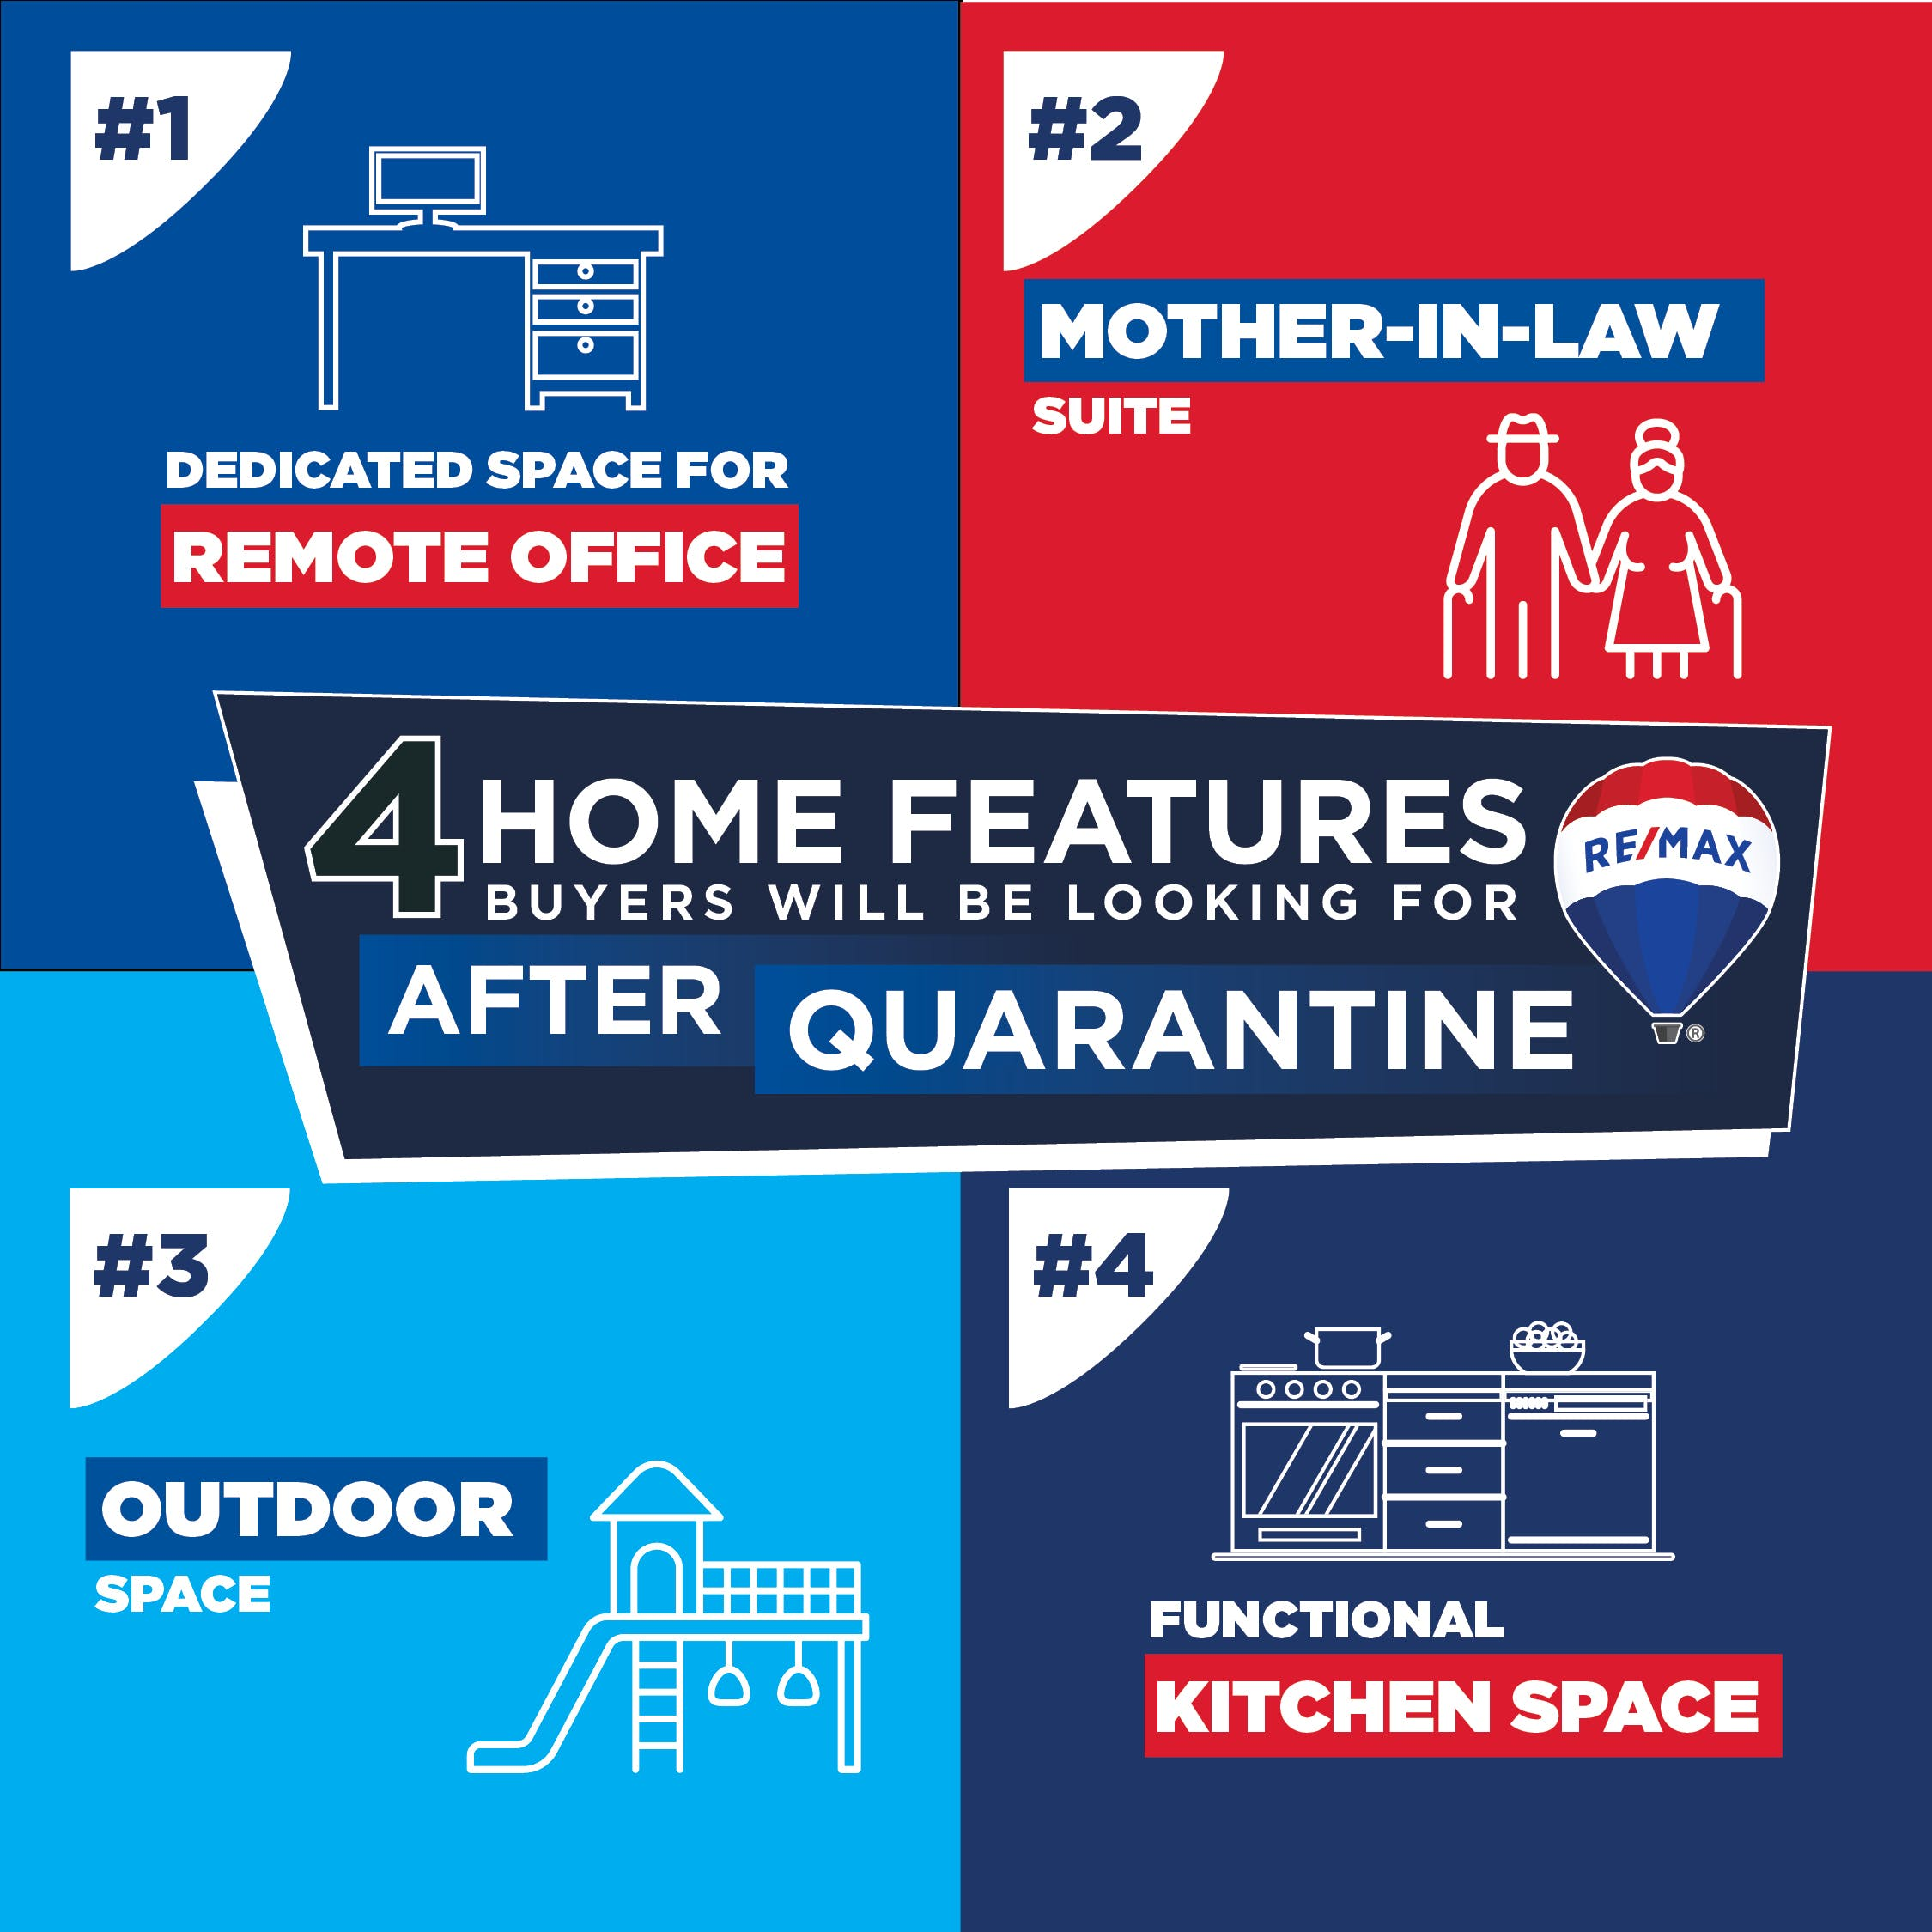 TOP HOME FEATURES FOR A POST-QUARANTINE WORLD, ACCORDING TO REAL ESTATE AGENTS